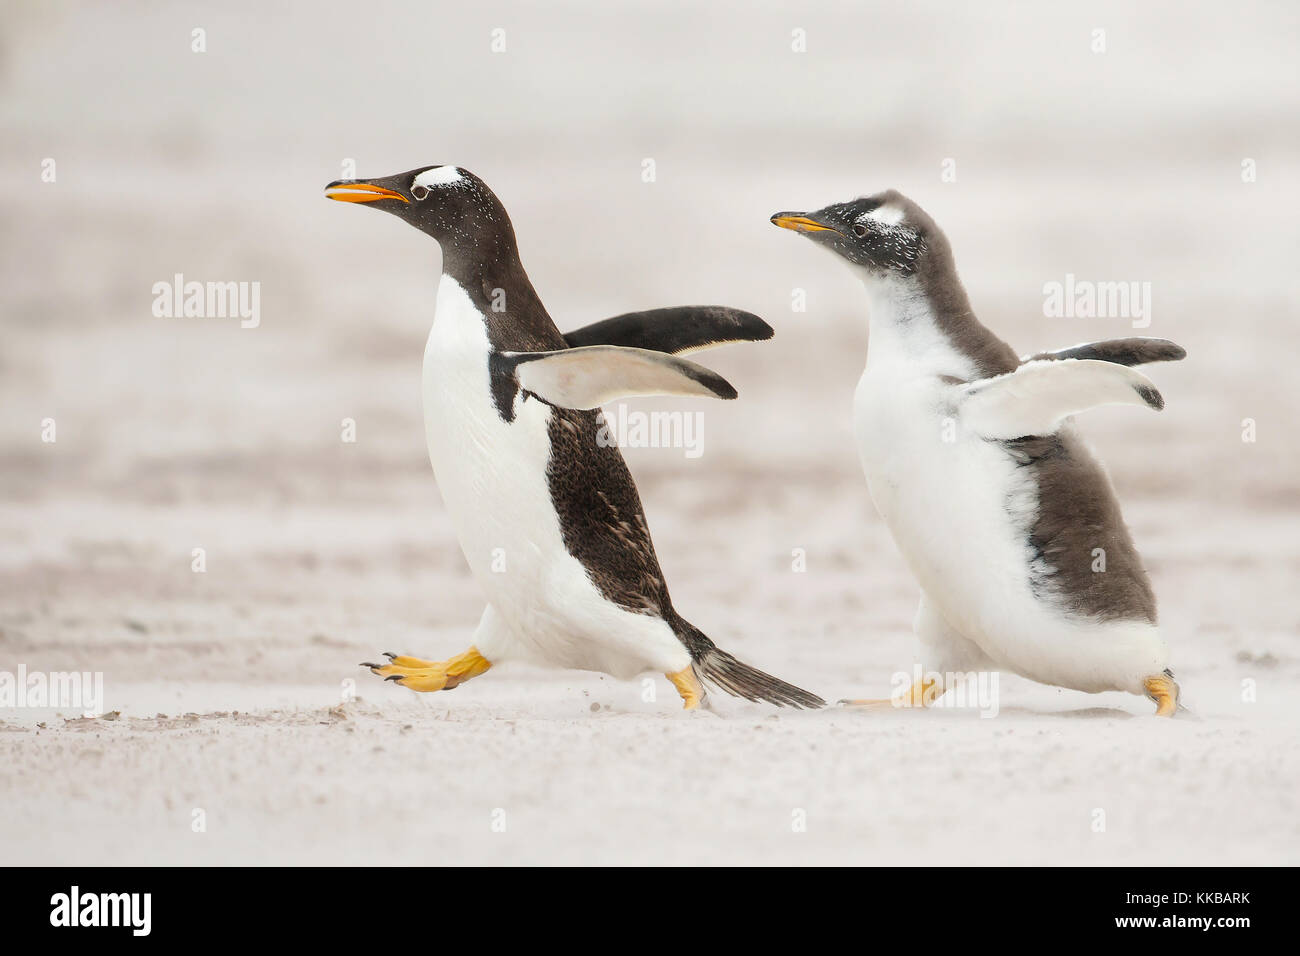 One young gentoo penguin running after the parent and asking for food - Stock Image